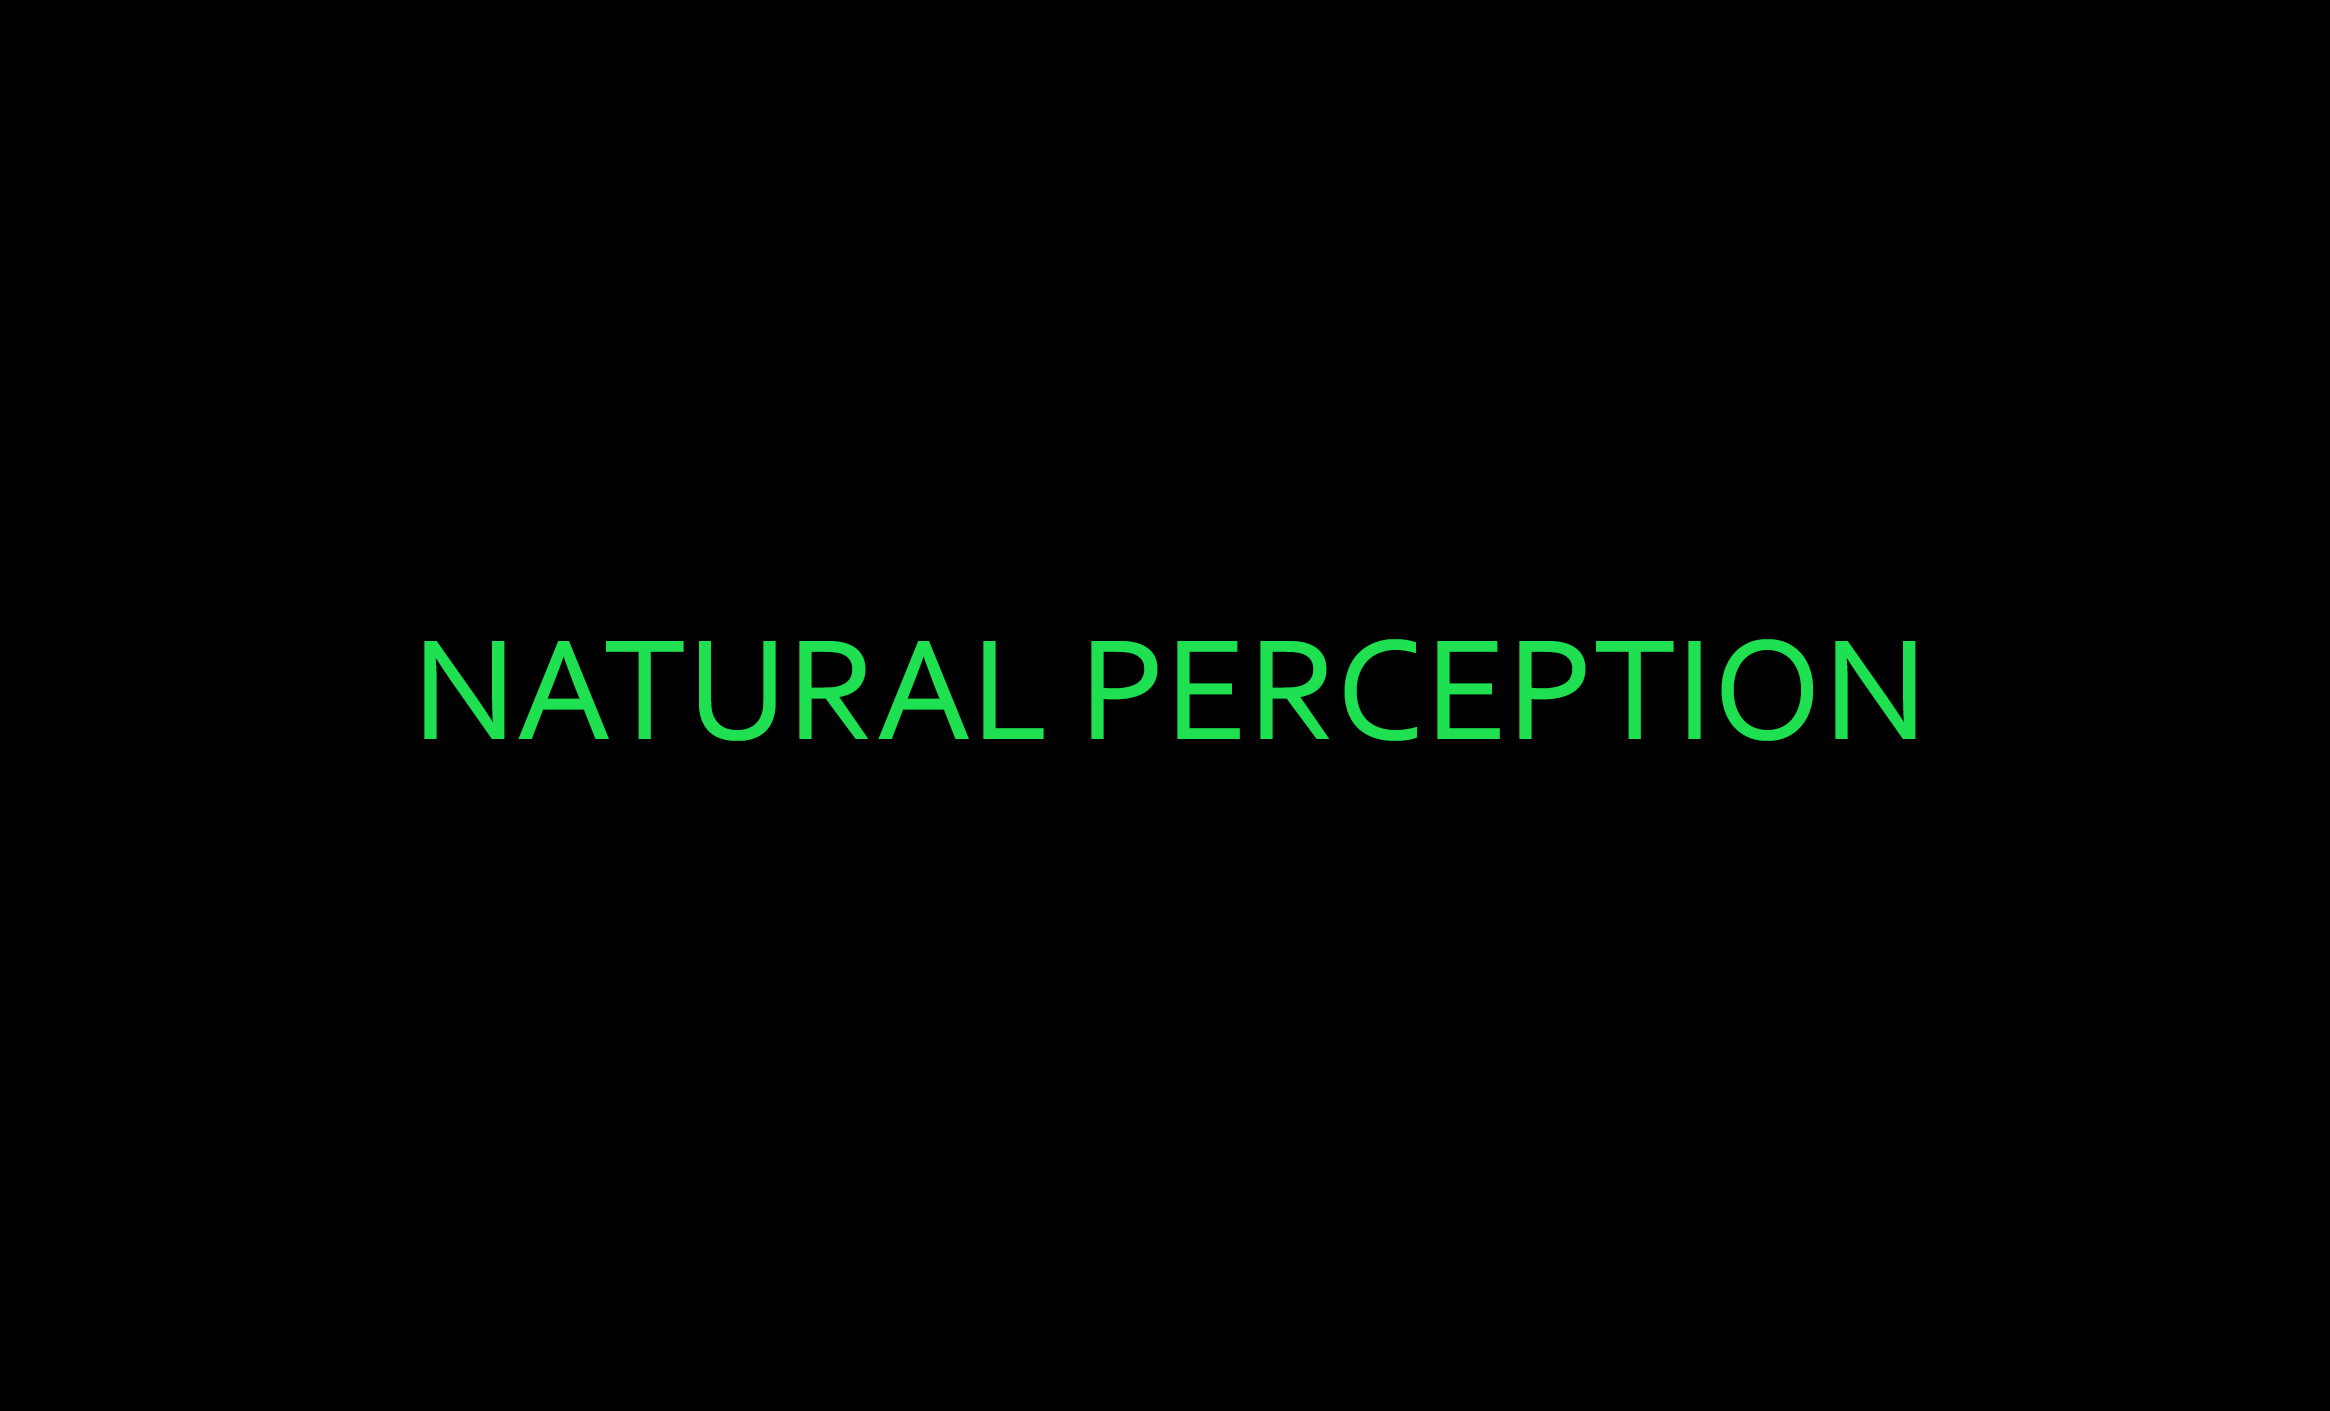 NATURAL PERCEPTION